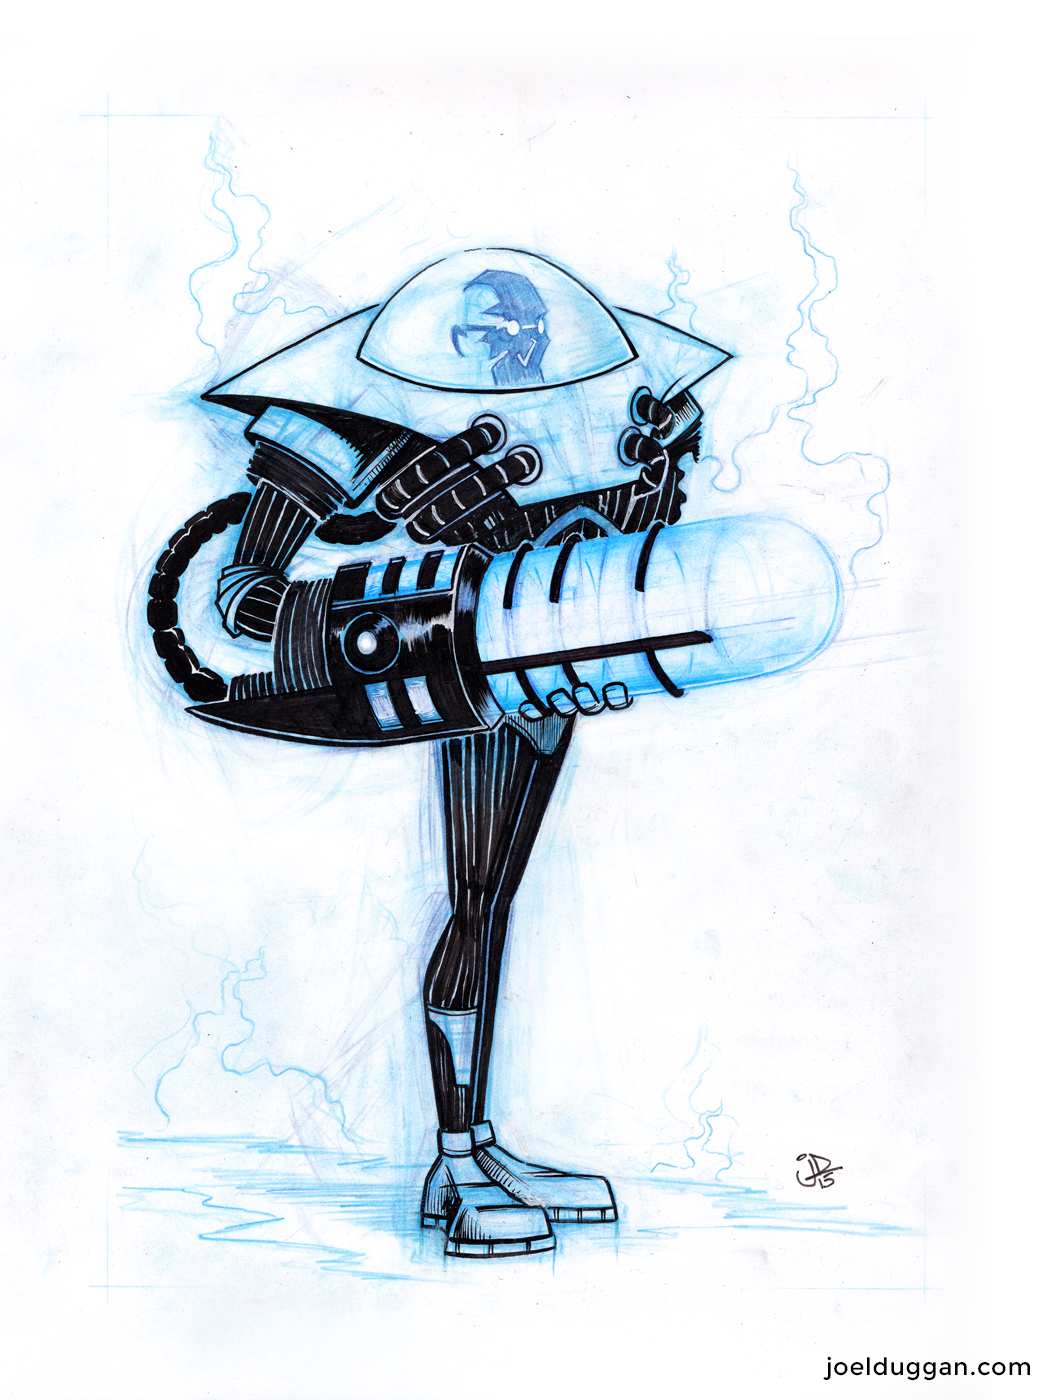 Inktober-2015-10-04-Mr-Freeze-Inks-1400-web